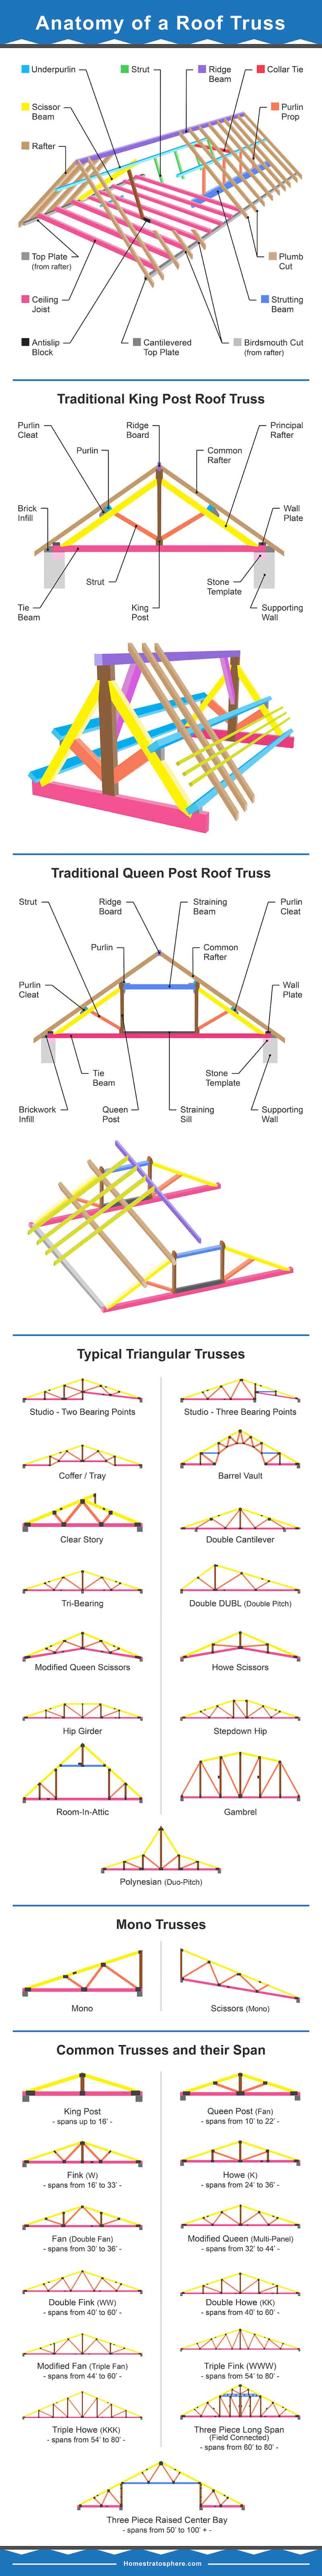 Epic roof truss graphic showing the anatomy of a roof truss plus all the different types of roof trusses.